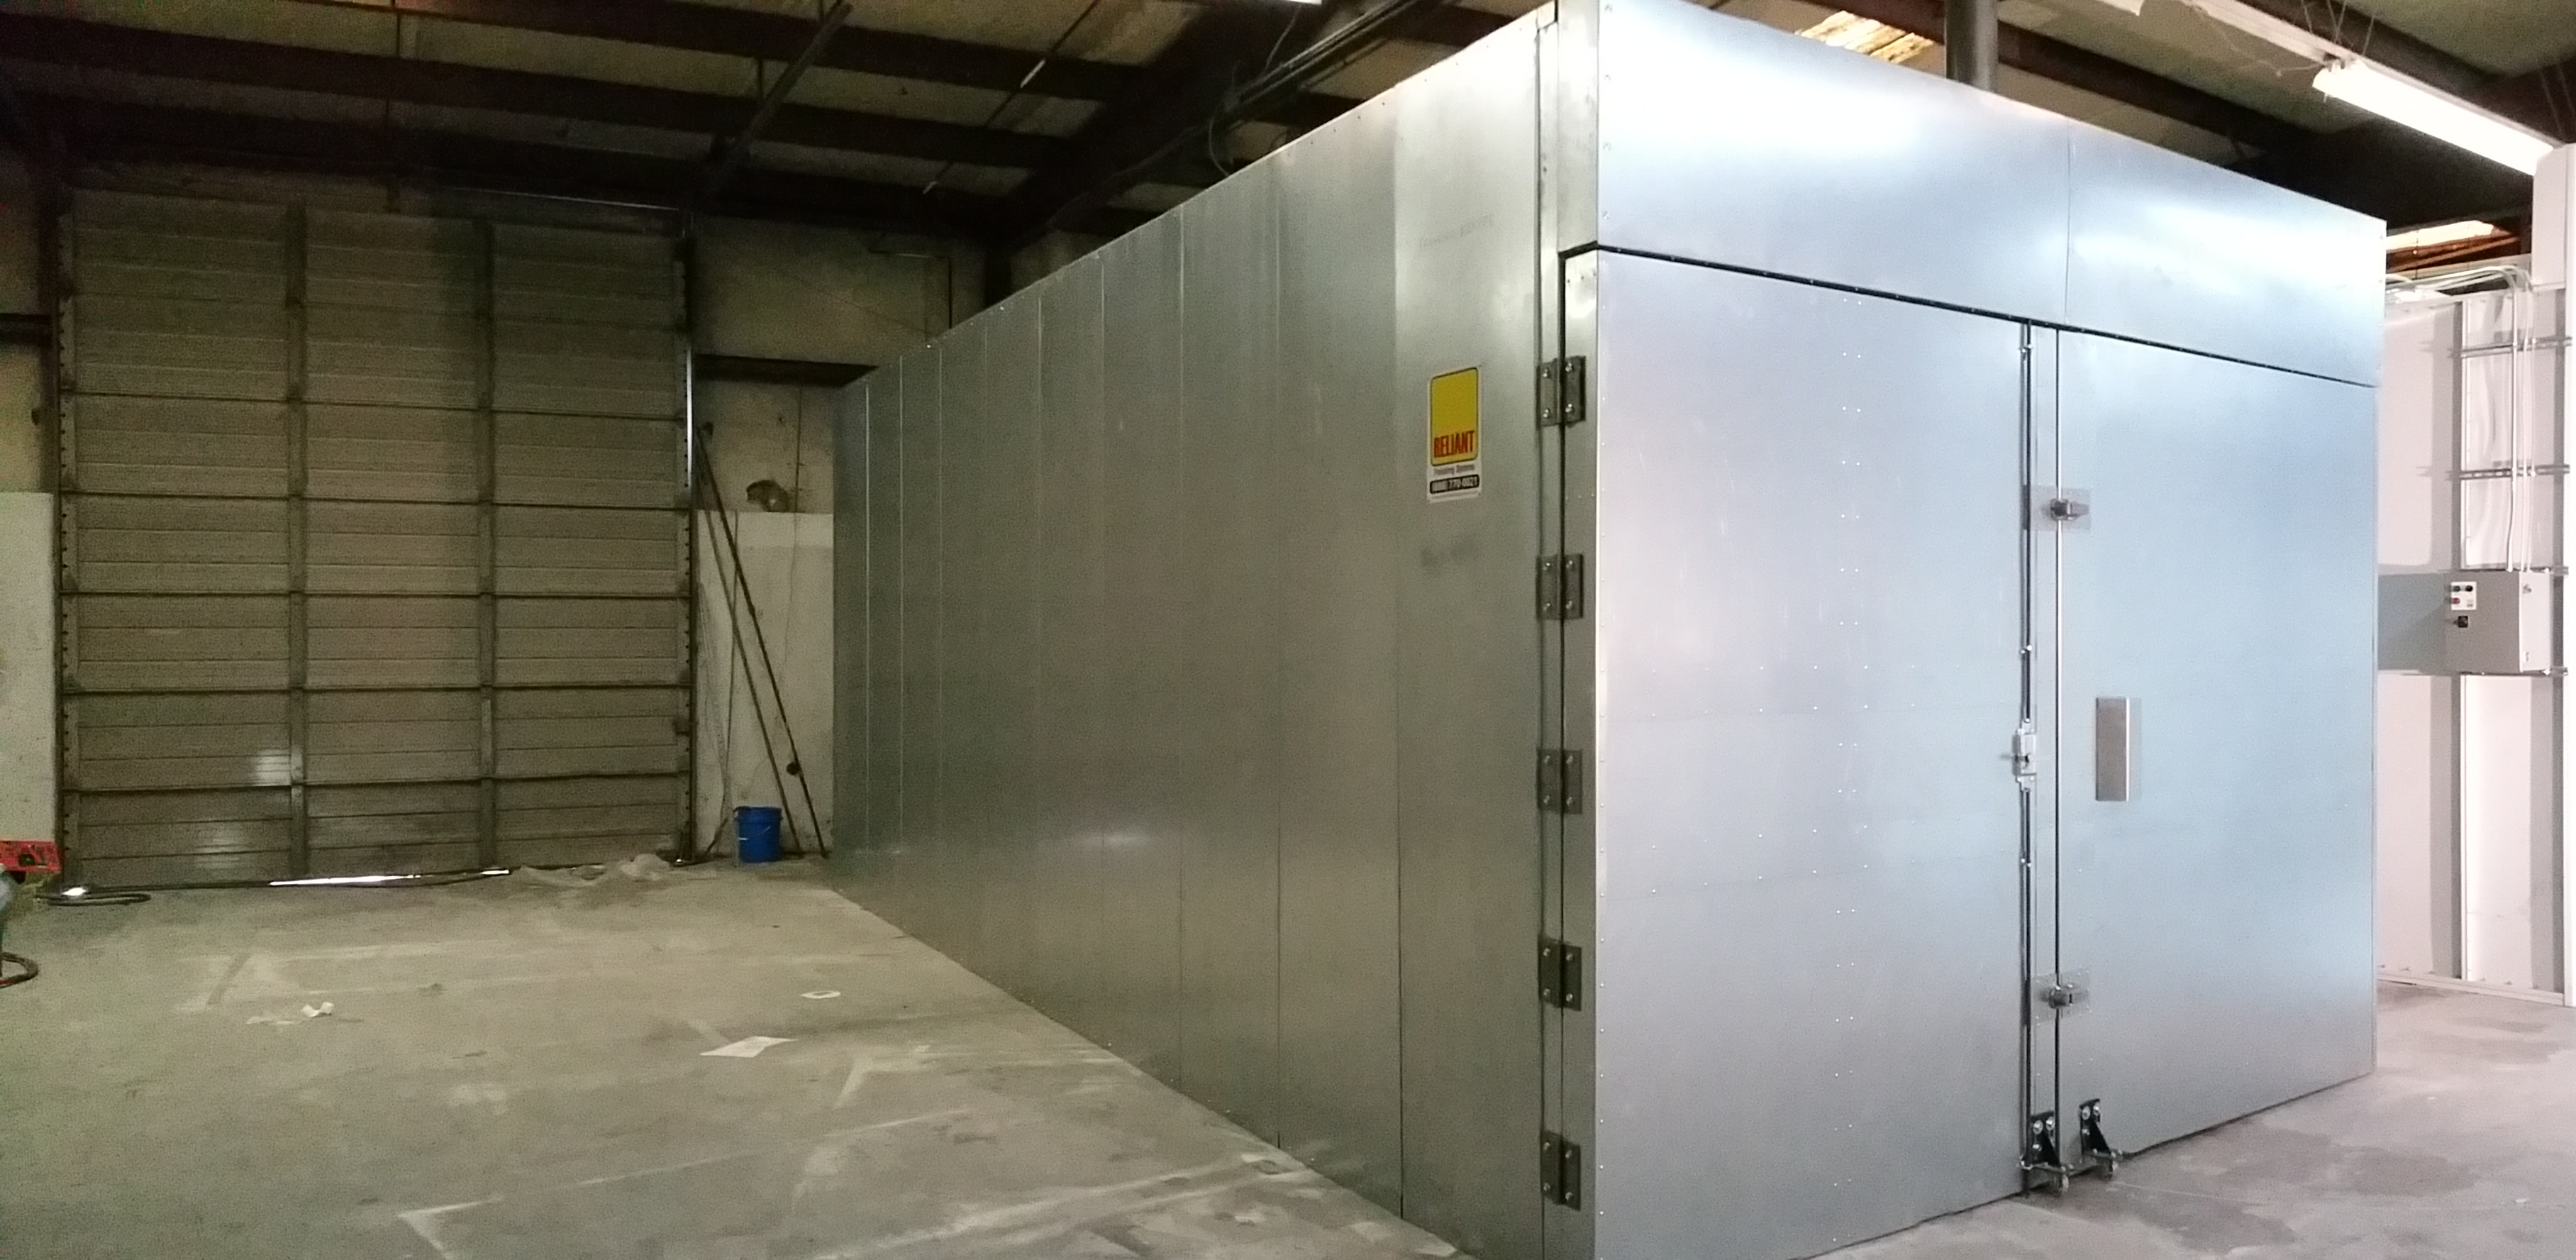 Batch Powder Curing Oven From Reliant Finishing Systems & Improve Your Batch Powder Curing Oven Performance